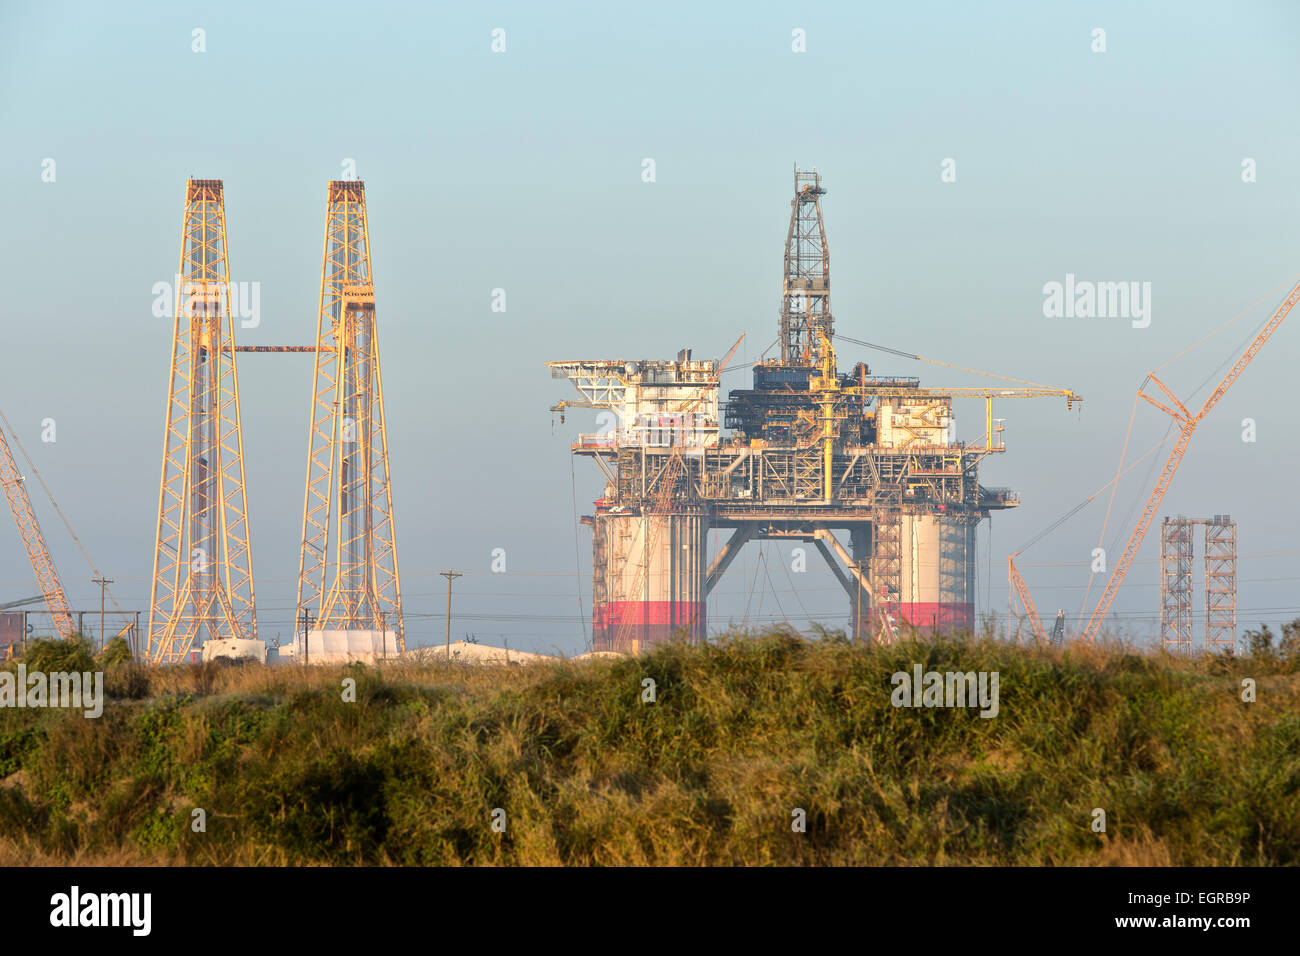 Construction of 'Big Foot'  deepwater oil & gas drill platform nearing completion. - Stock Image